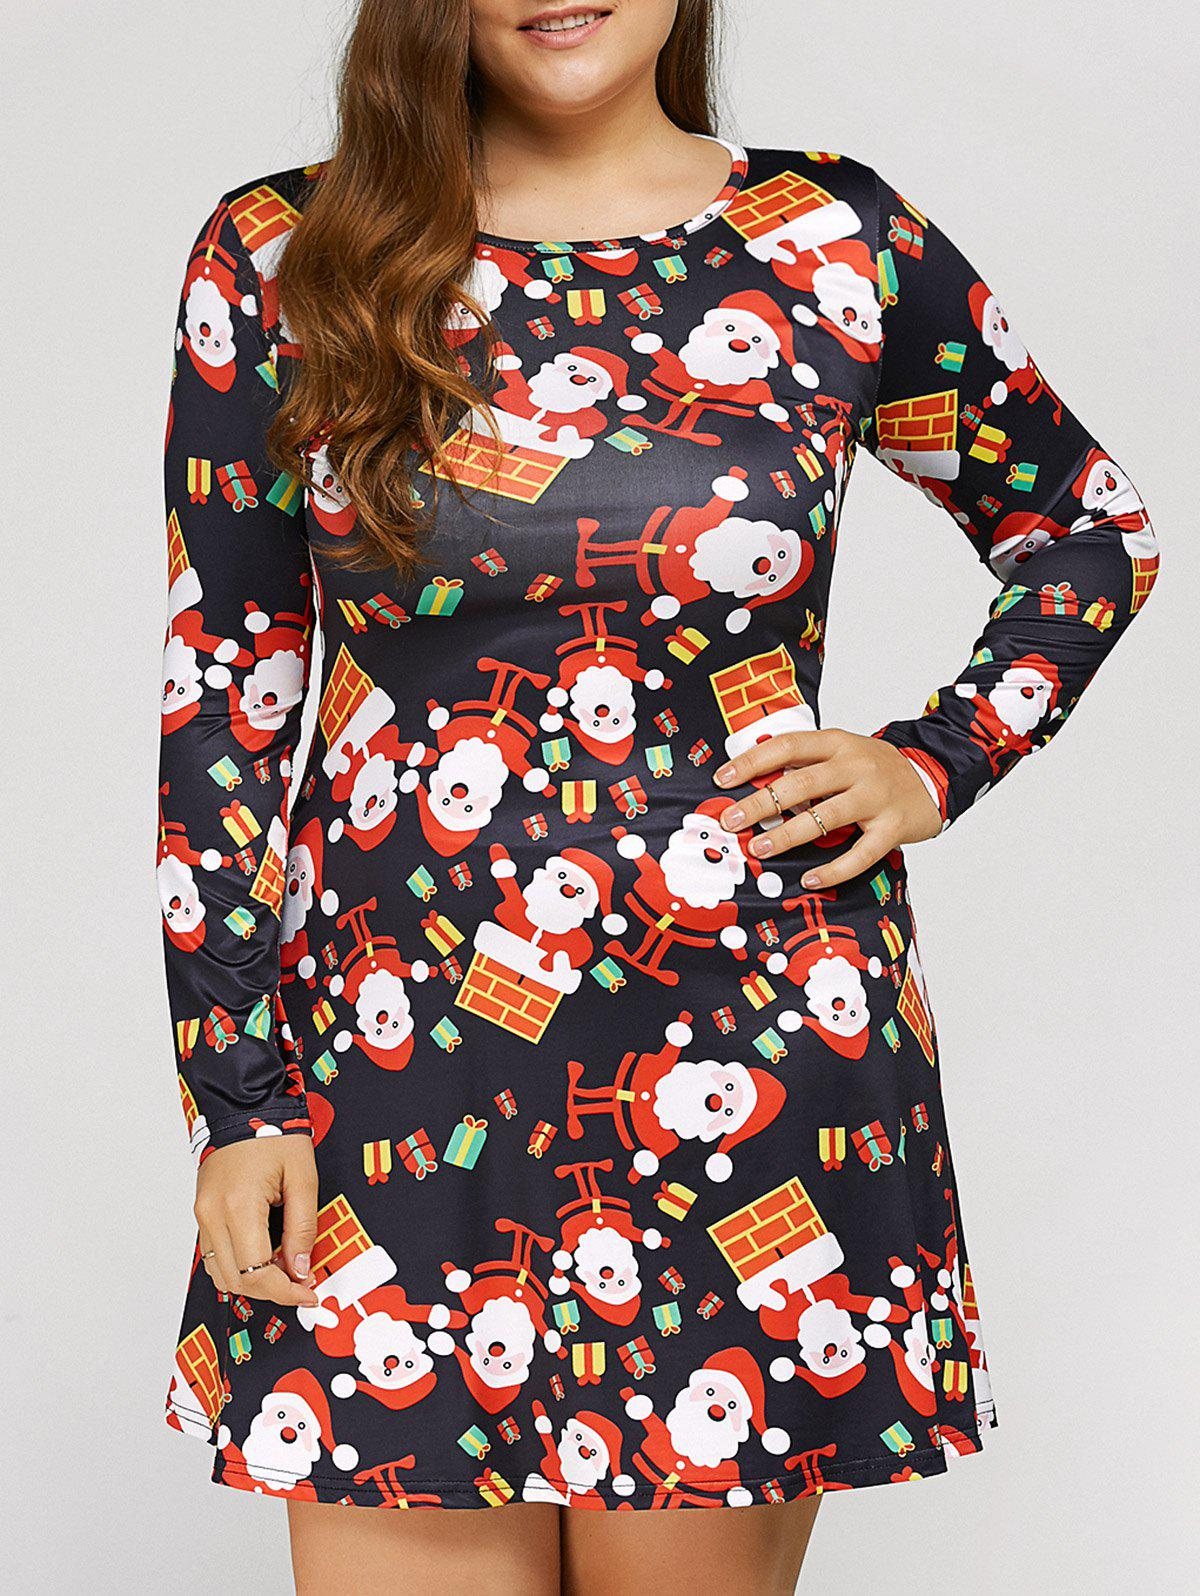 Long Sleeve Santa Plus Size Christmas Swing DressWOMEN<br><br>Size: XL; Color: BLACK; Style: Casual; Material: Polyester; Silhouette: A-Line; Dresses Length: Mini; Neckline: Scoop Neck; Sleeve Length: Long Sleeves; Pattern Type: Character; With Belt: No; Season: Fall,Spring; Weight: 0.250kg; Package Contents: 1 x Dress;